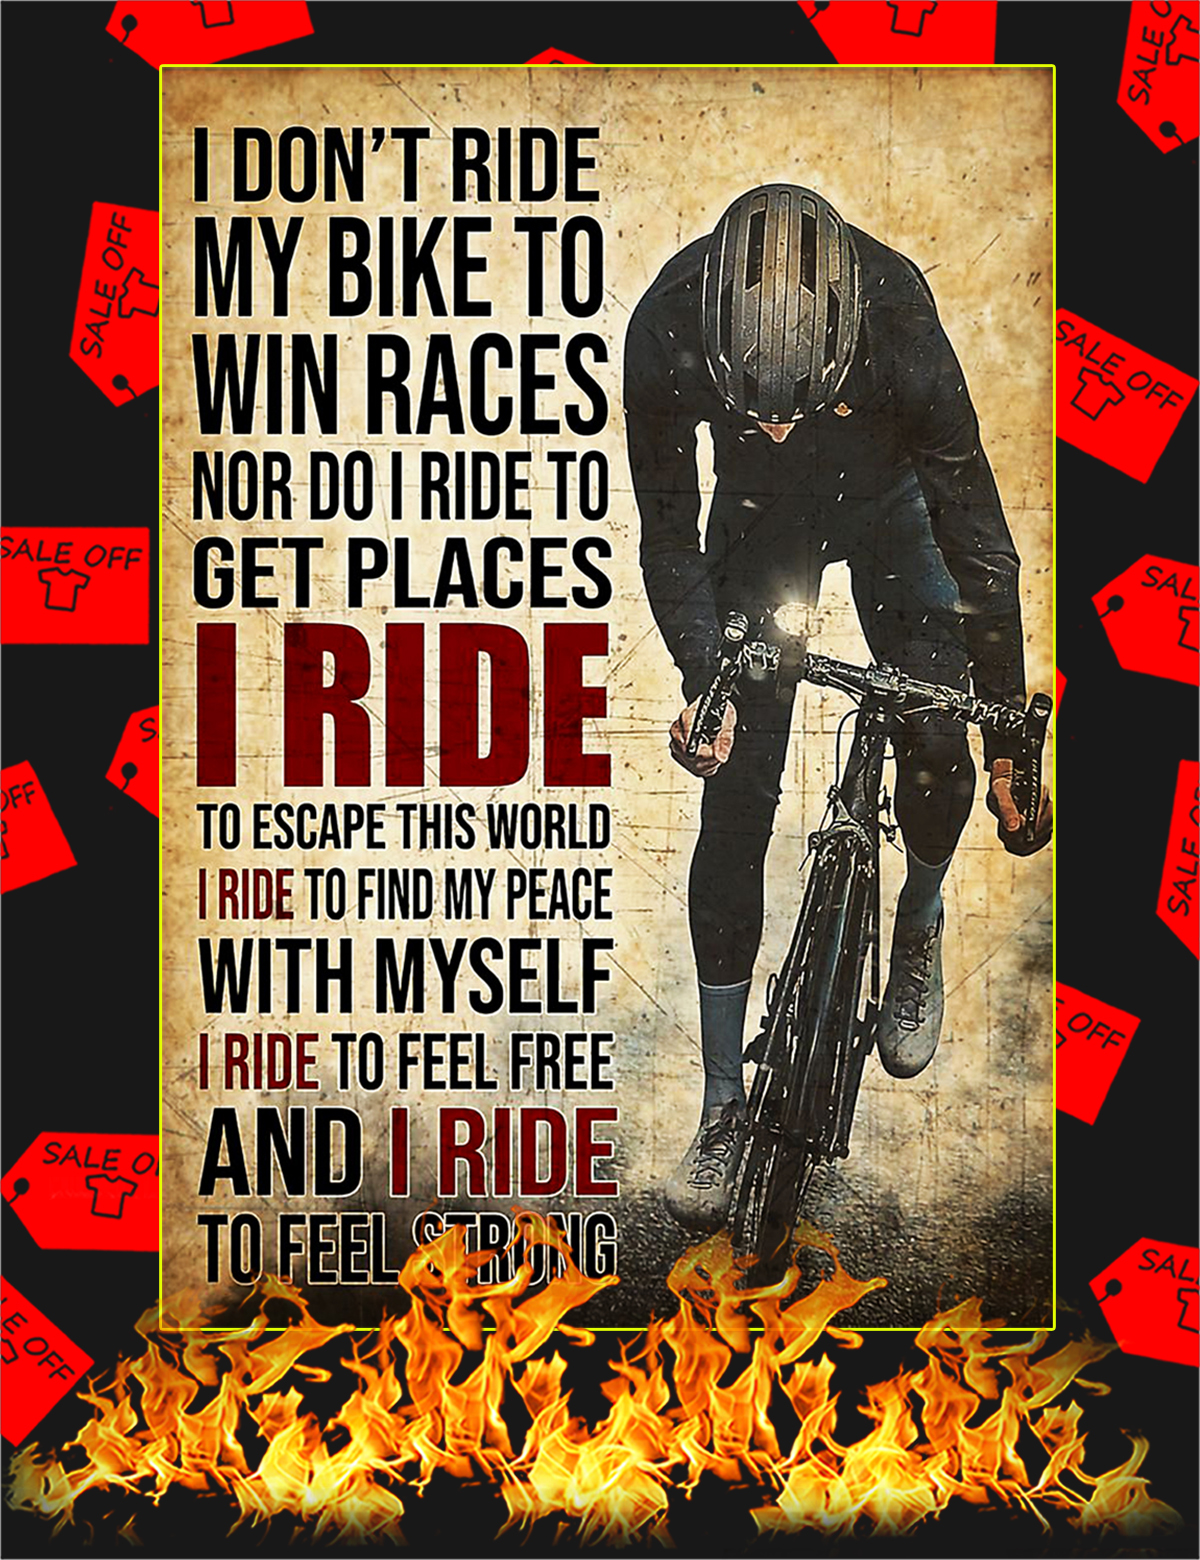 I don't ride my bike to win races poster - A1